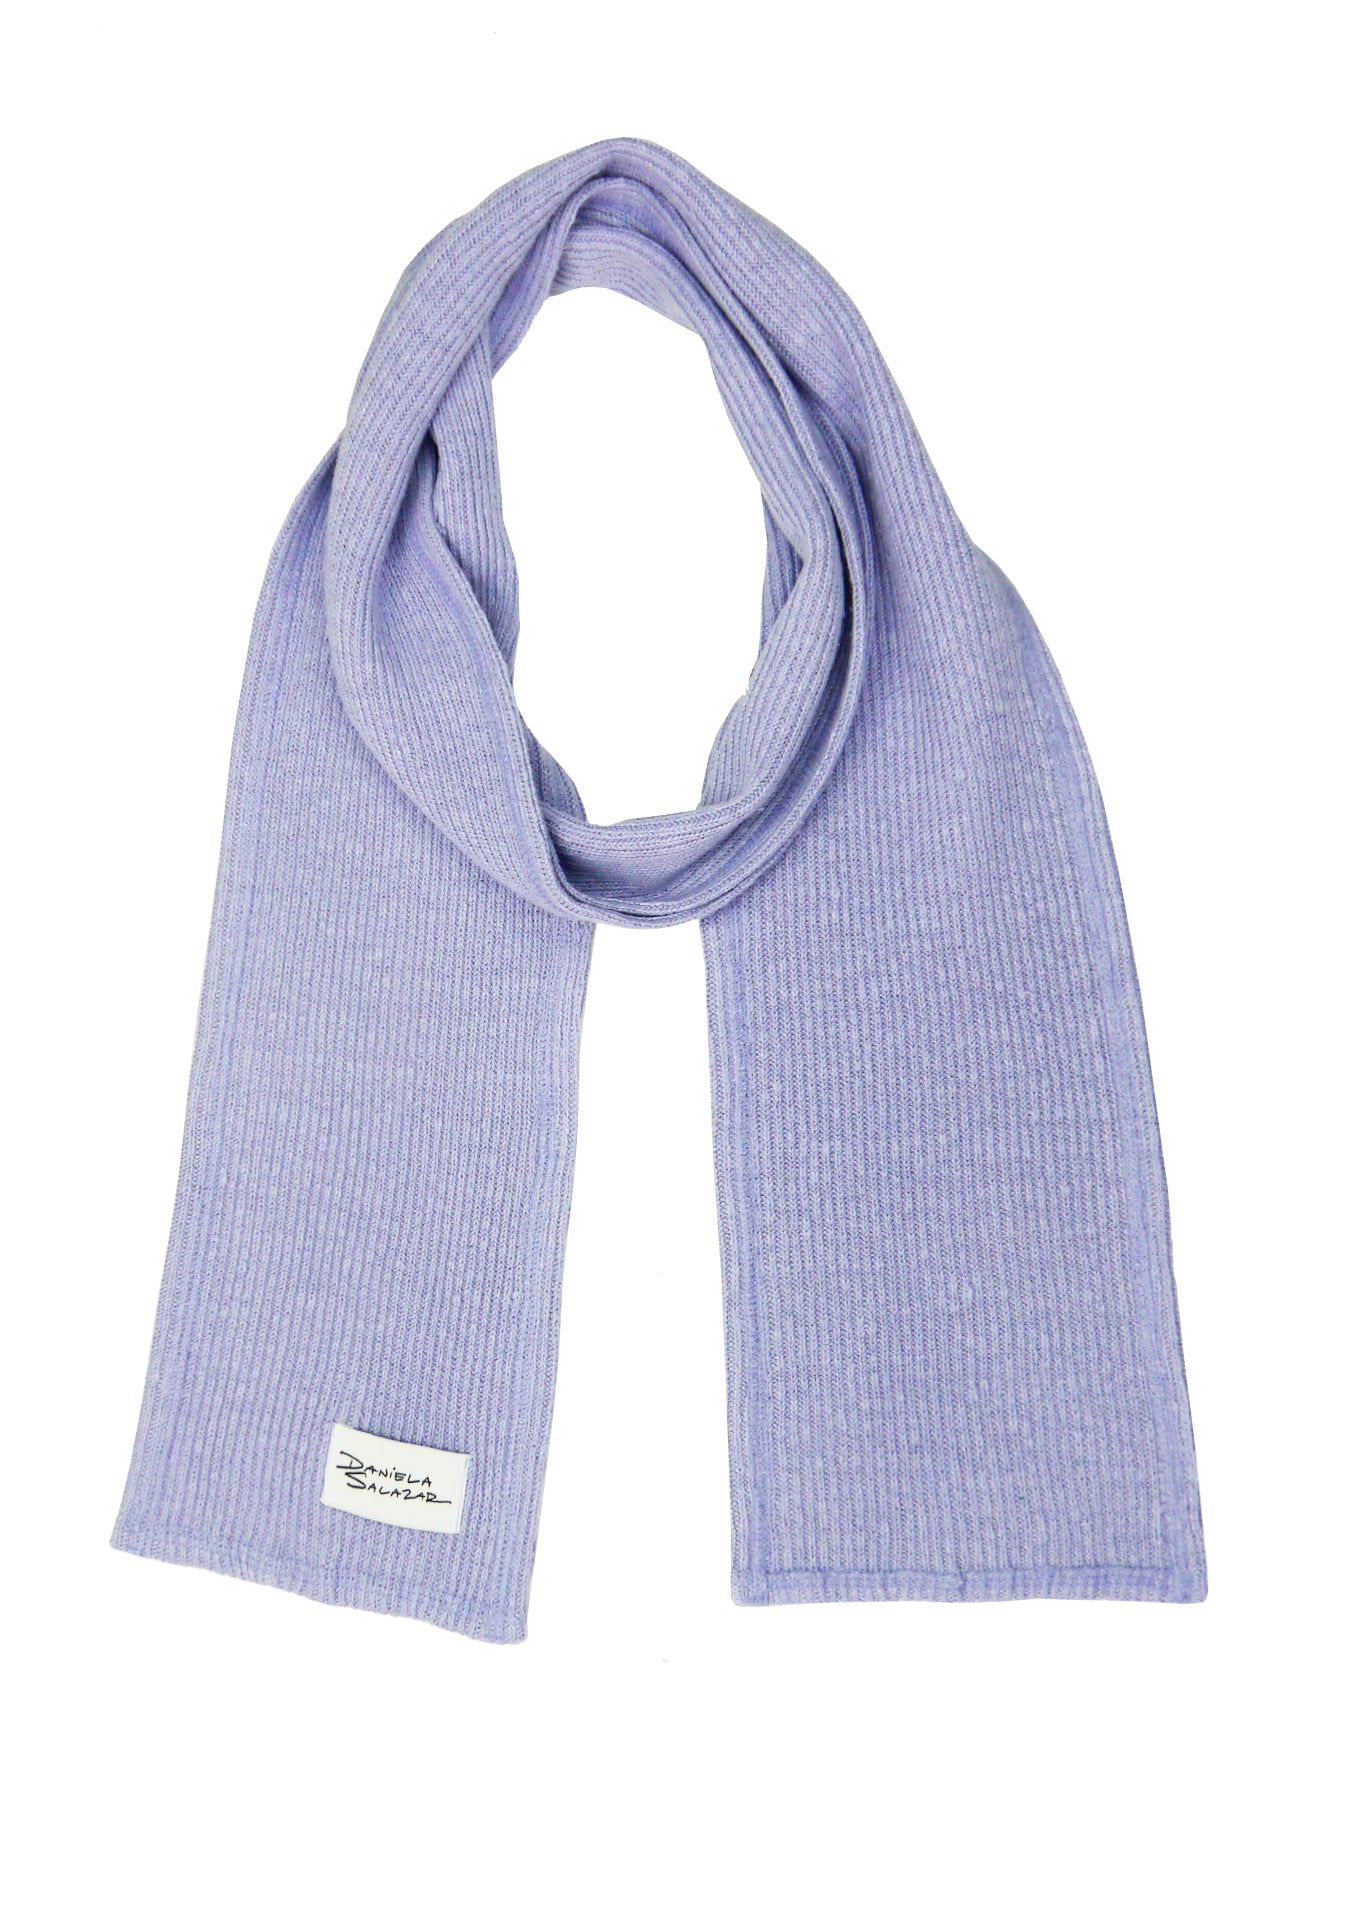 Ava - Hemp Scarf in Lavender